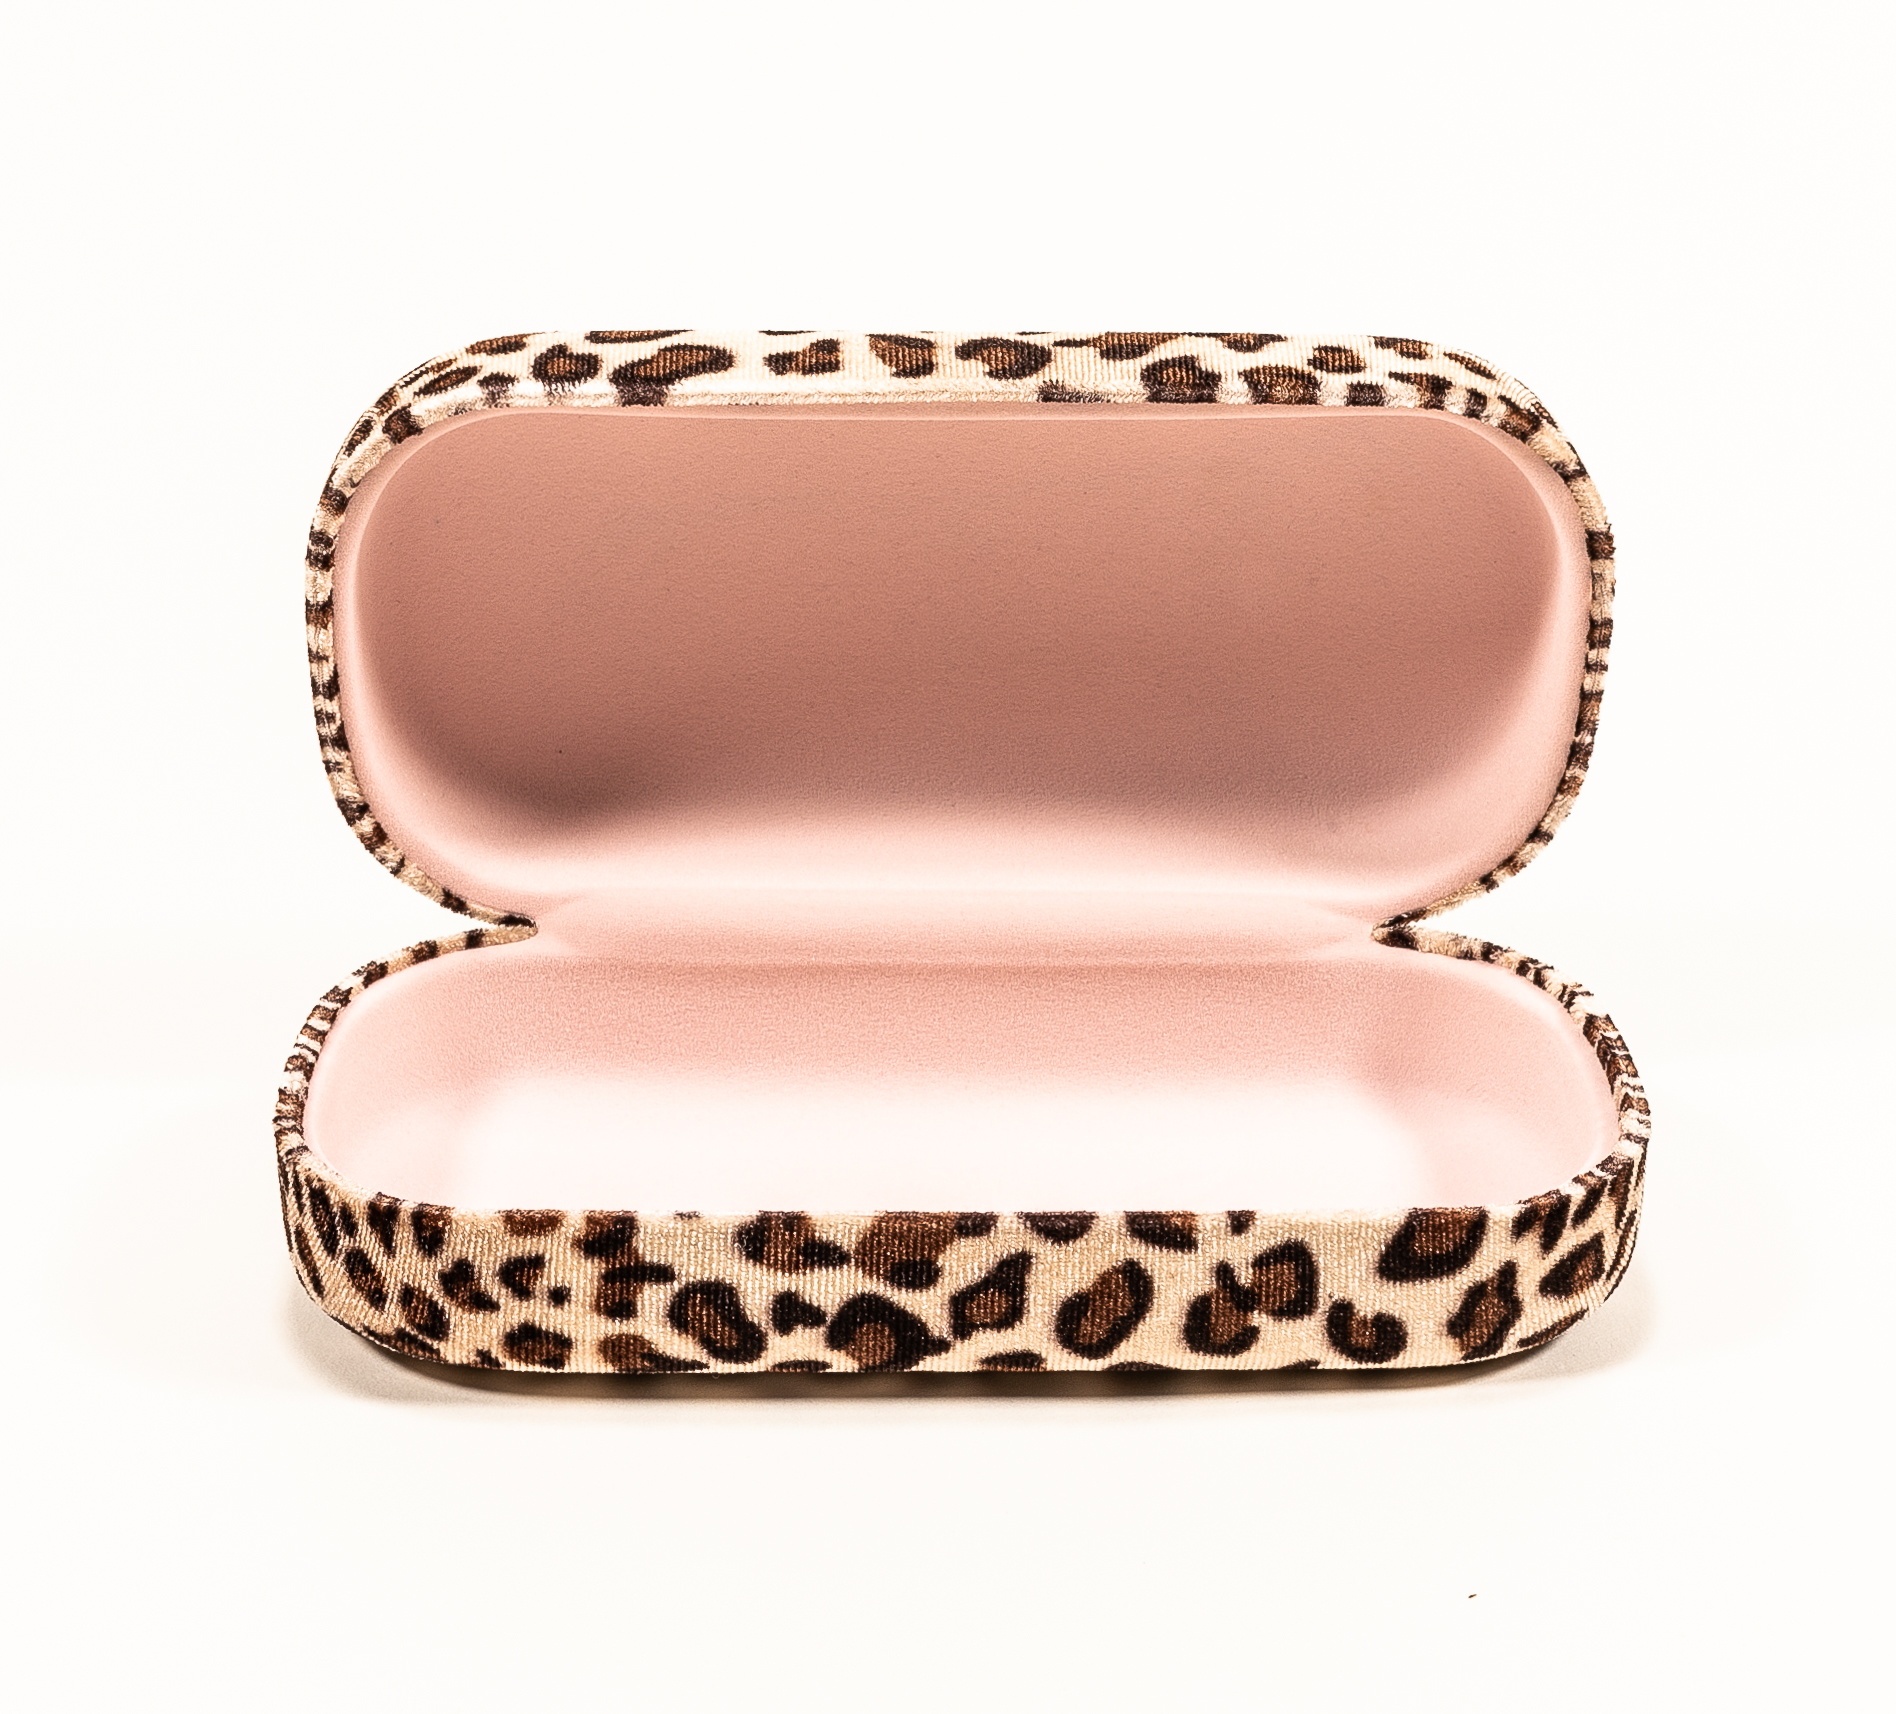 2021 Glasses Case Sunglasses Leopard Print Glasses Case